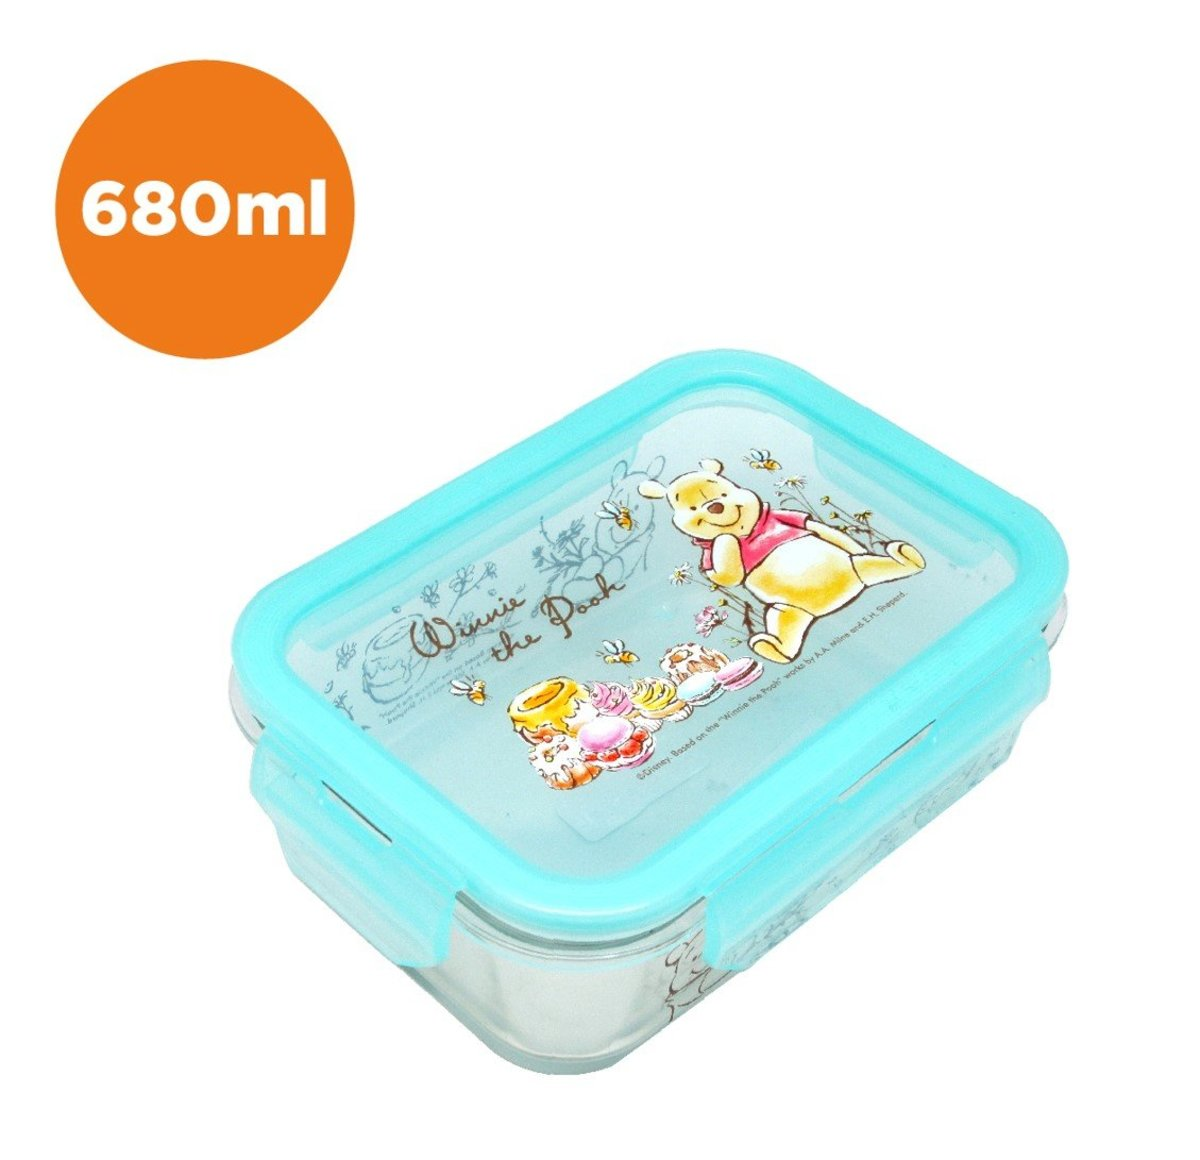 glass food container (680ml) (Licensed by Disney)